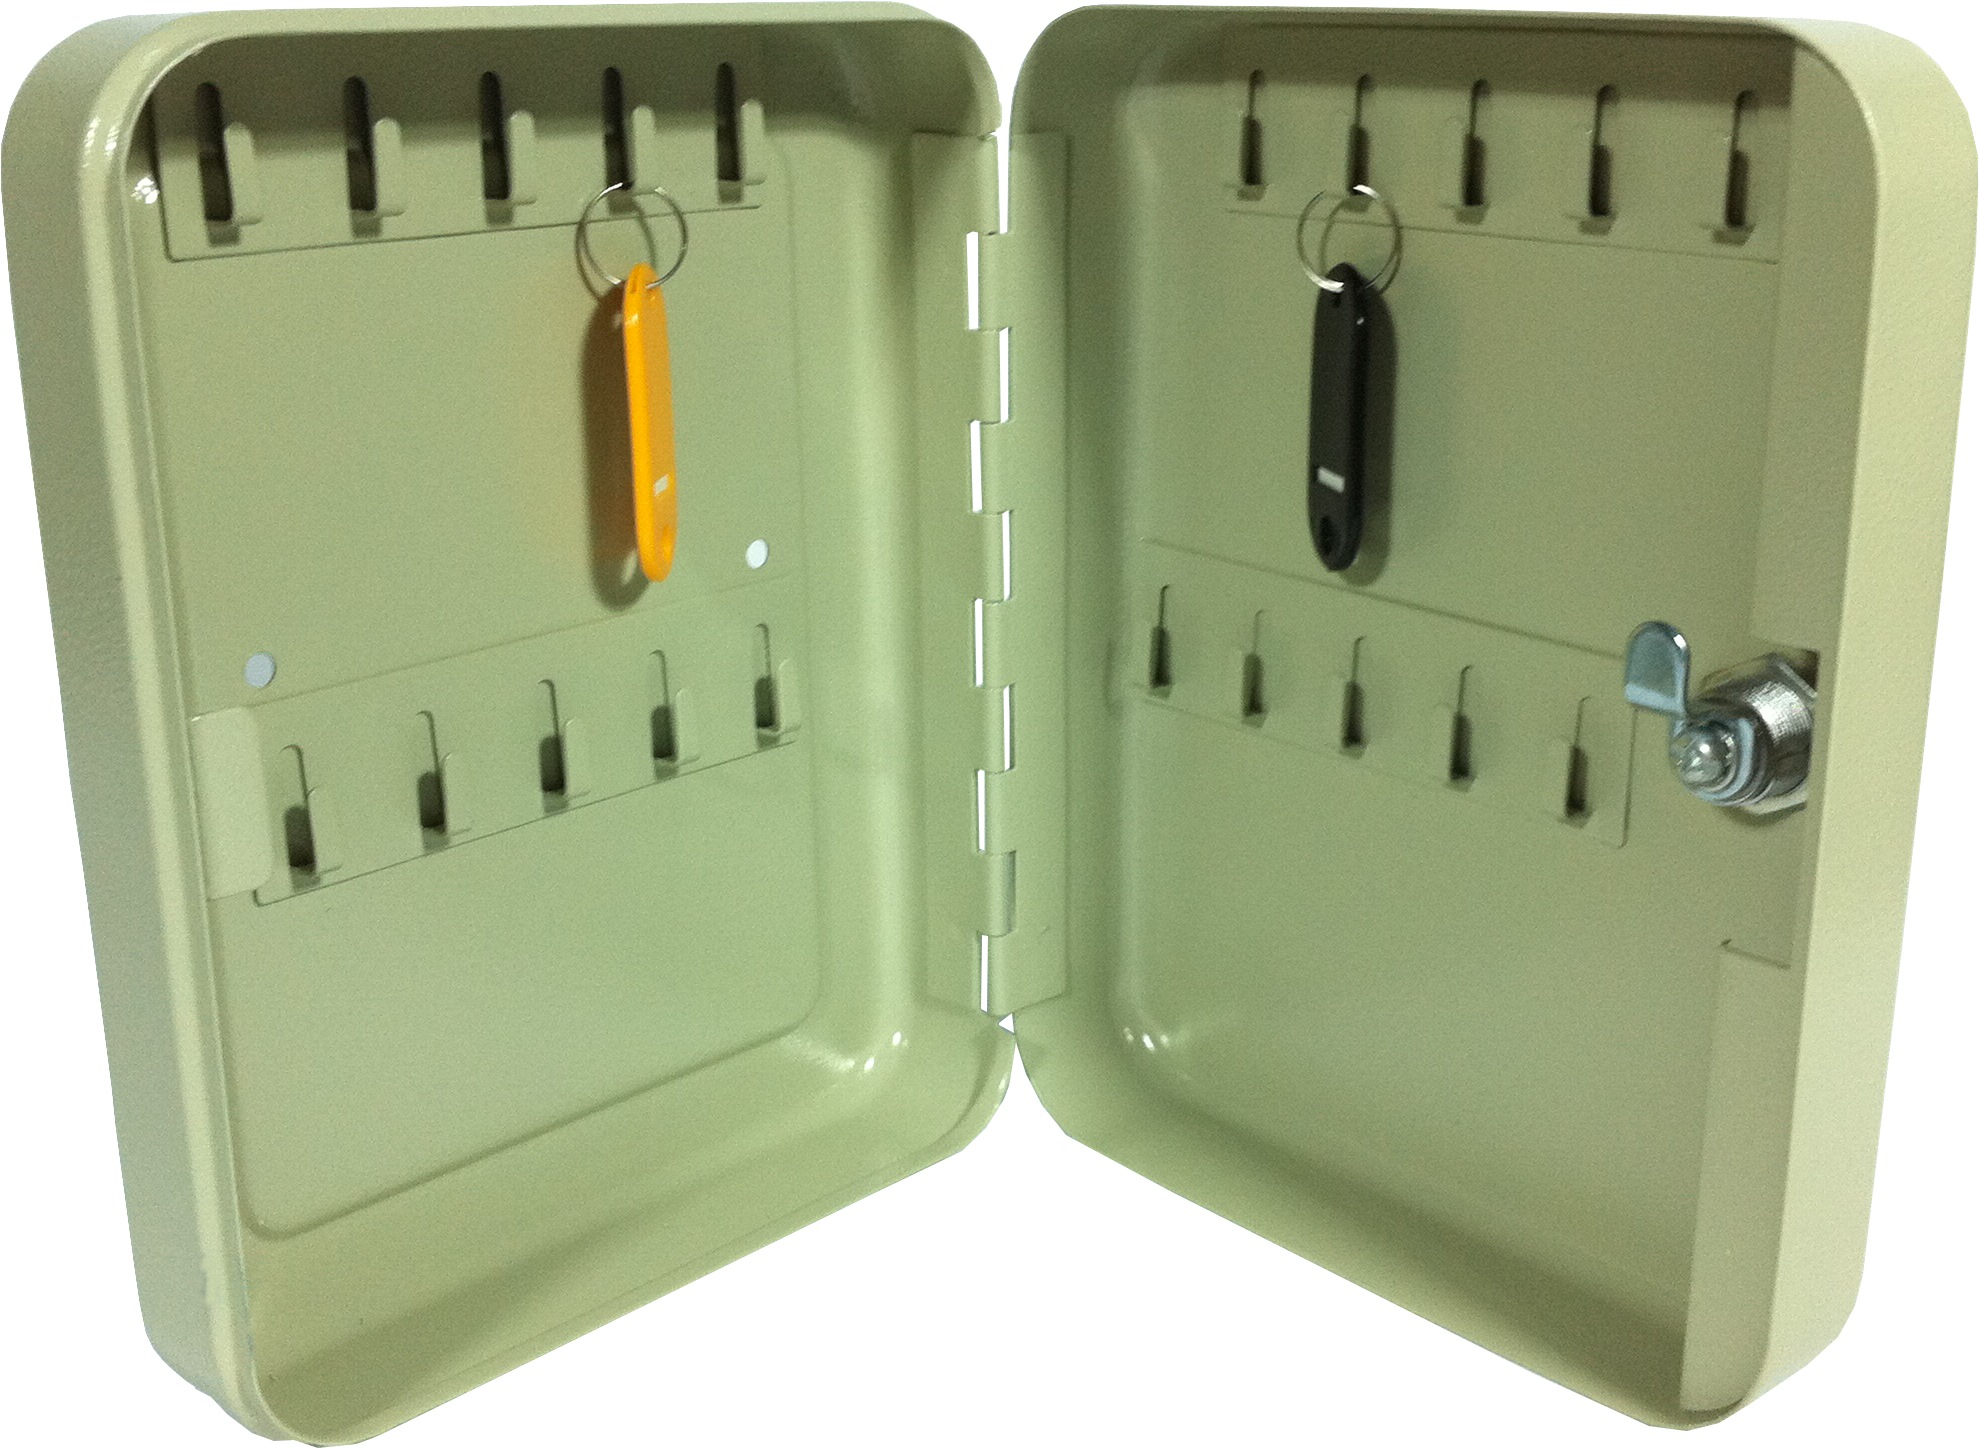 KEY BOX FOR 12PCS KEYS SR KB-12S